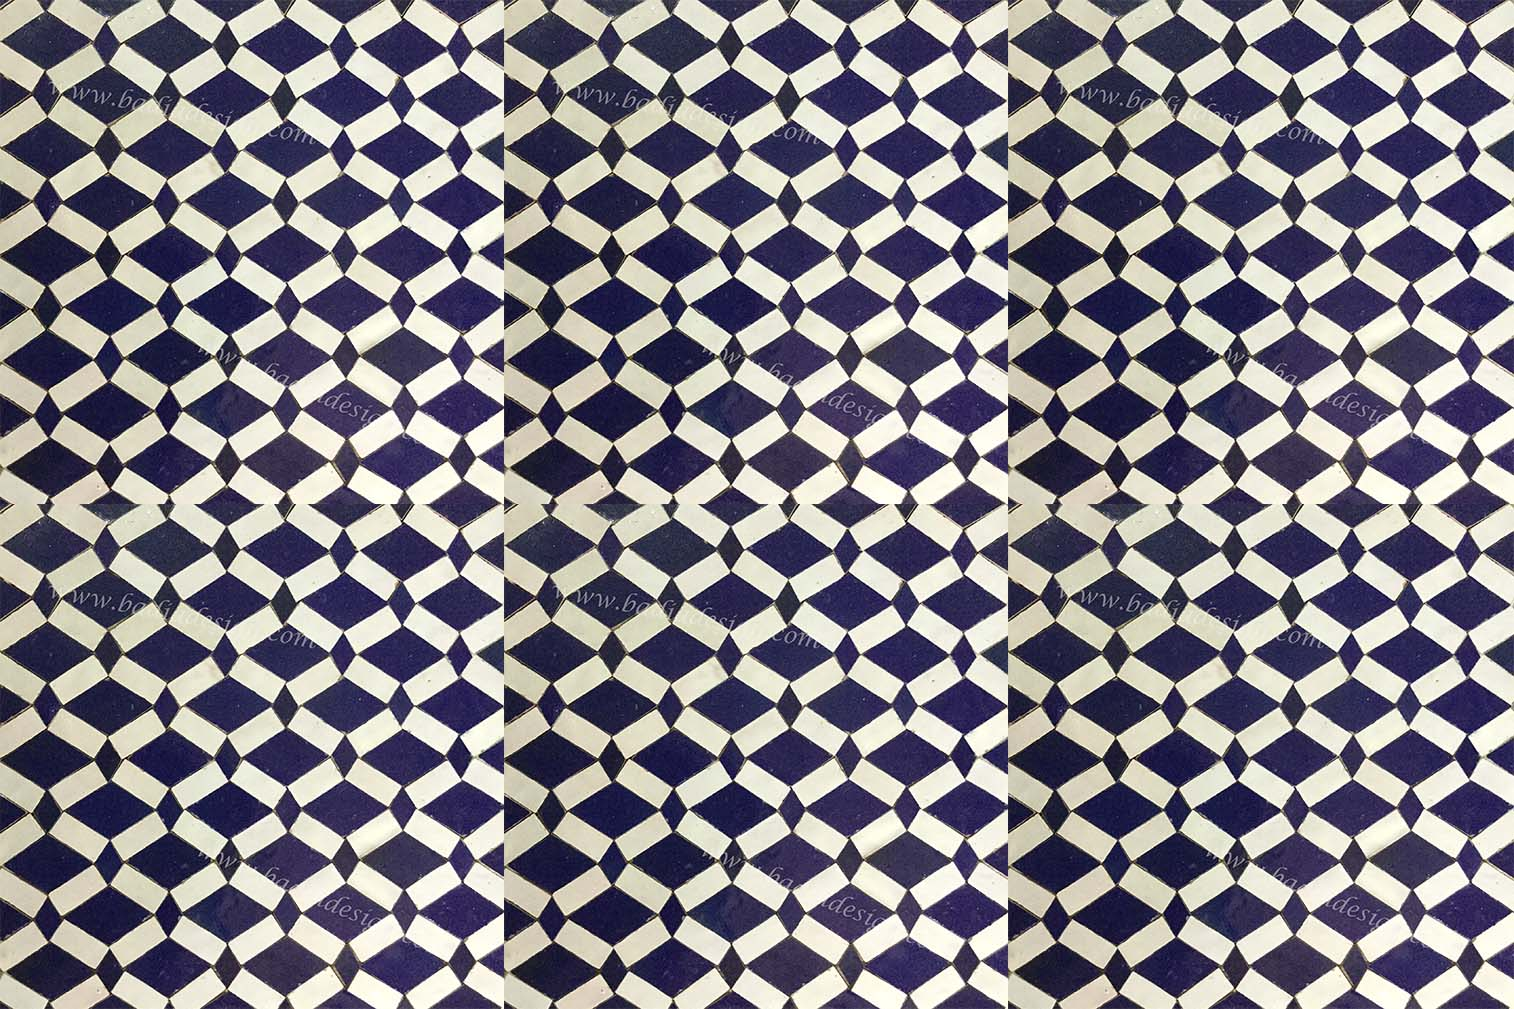 Moroccan mosaic ceramic tile from badia design inc Moroccan ceramic floor tile